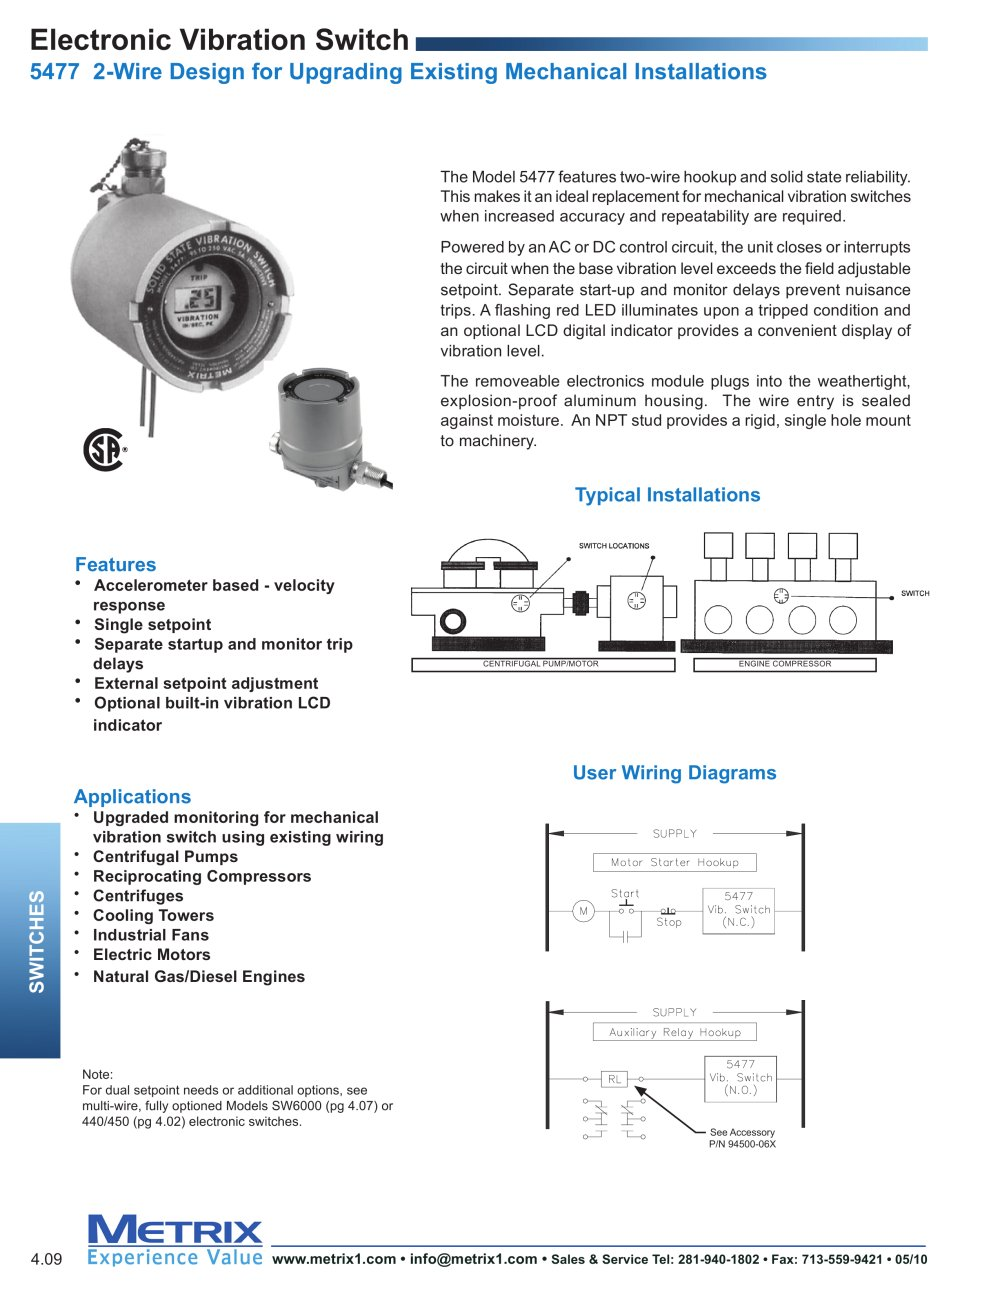 5477b Electronic Vibration Switch Metrix Instrument Co Pdf Centrifugal Pump Wiring Diagram 1 2 Pages